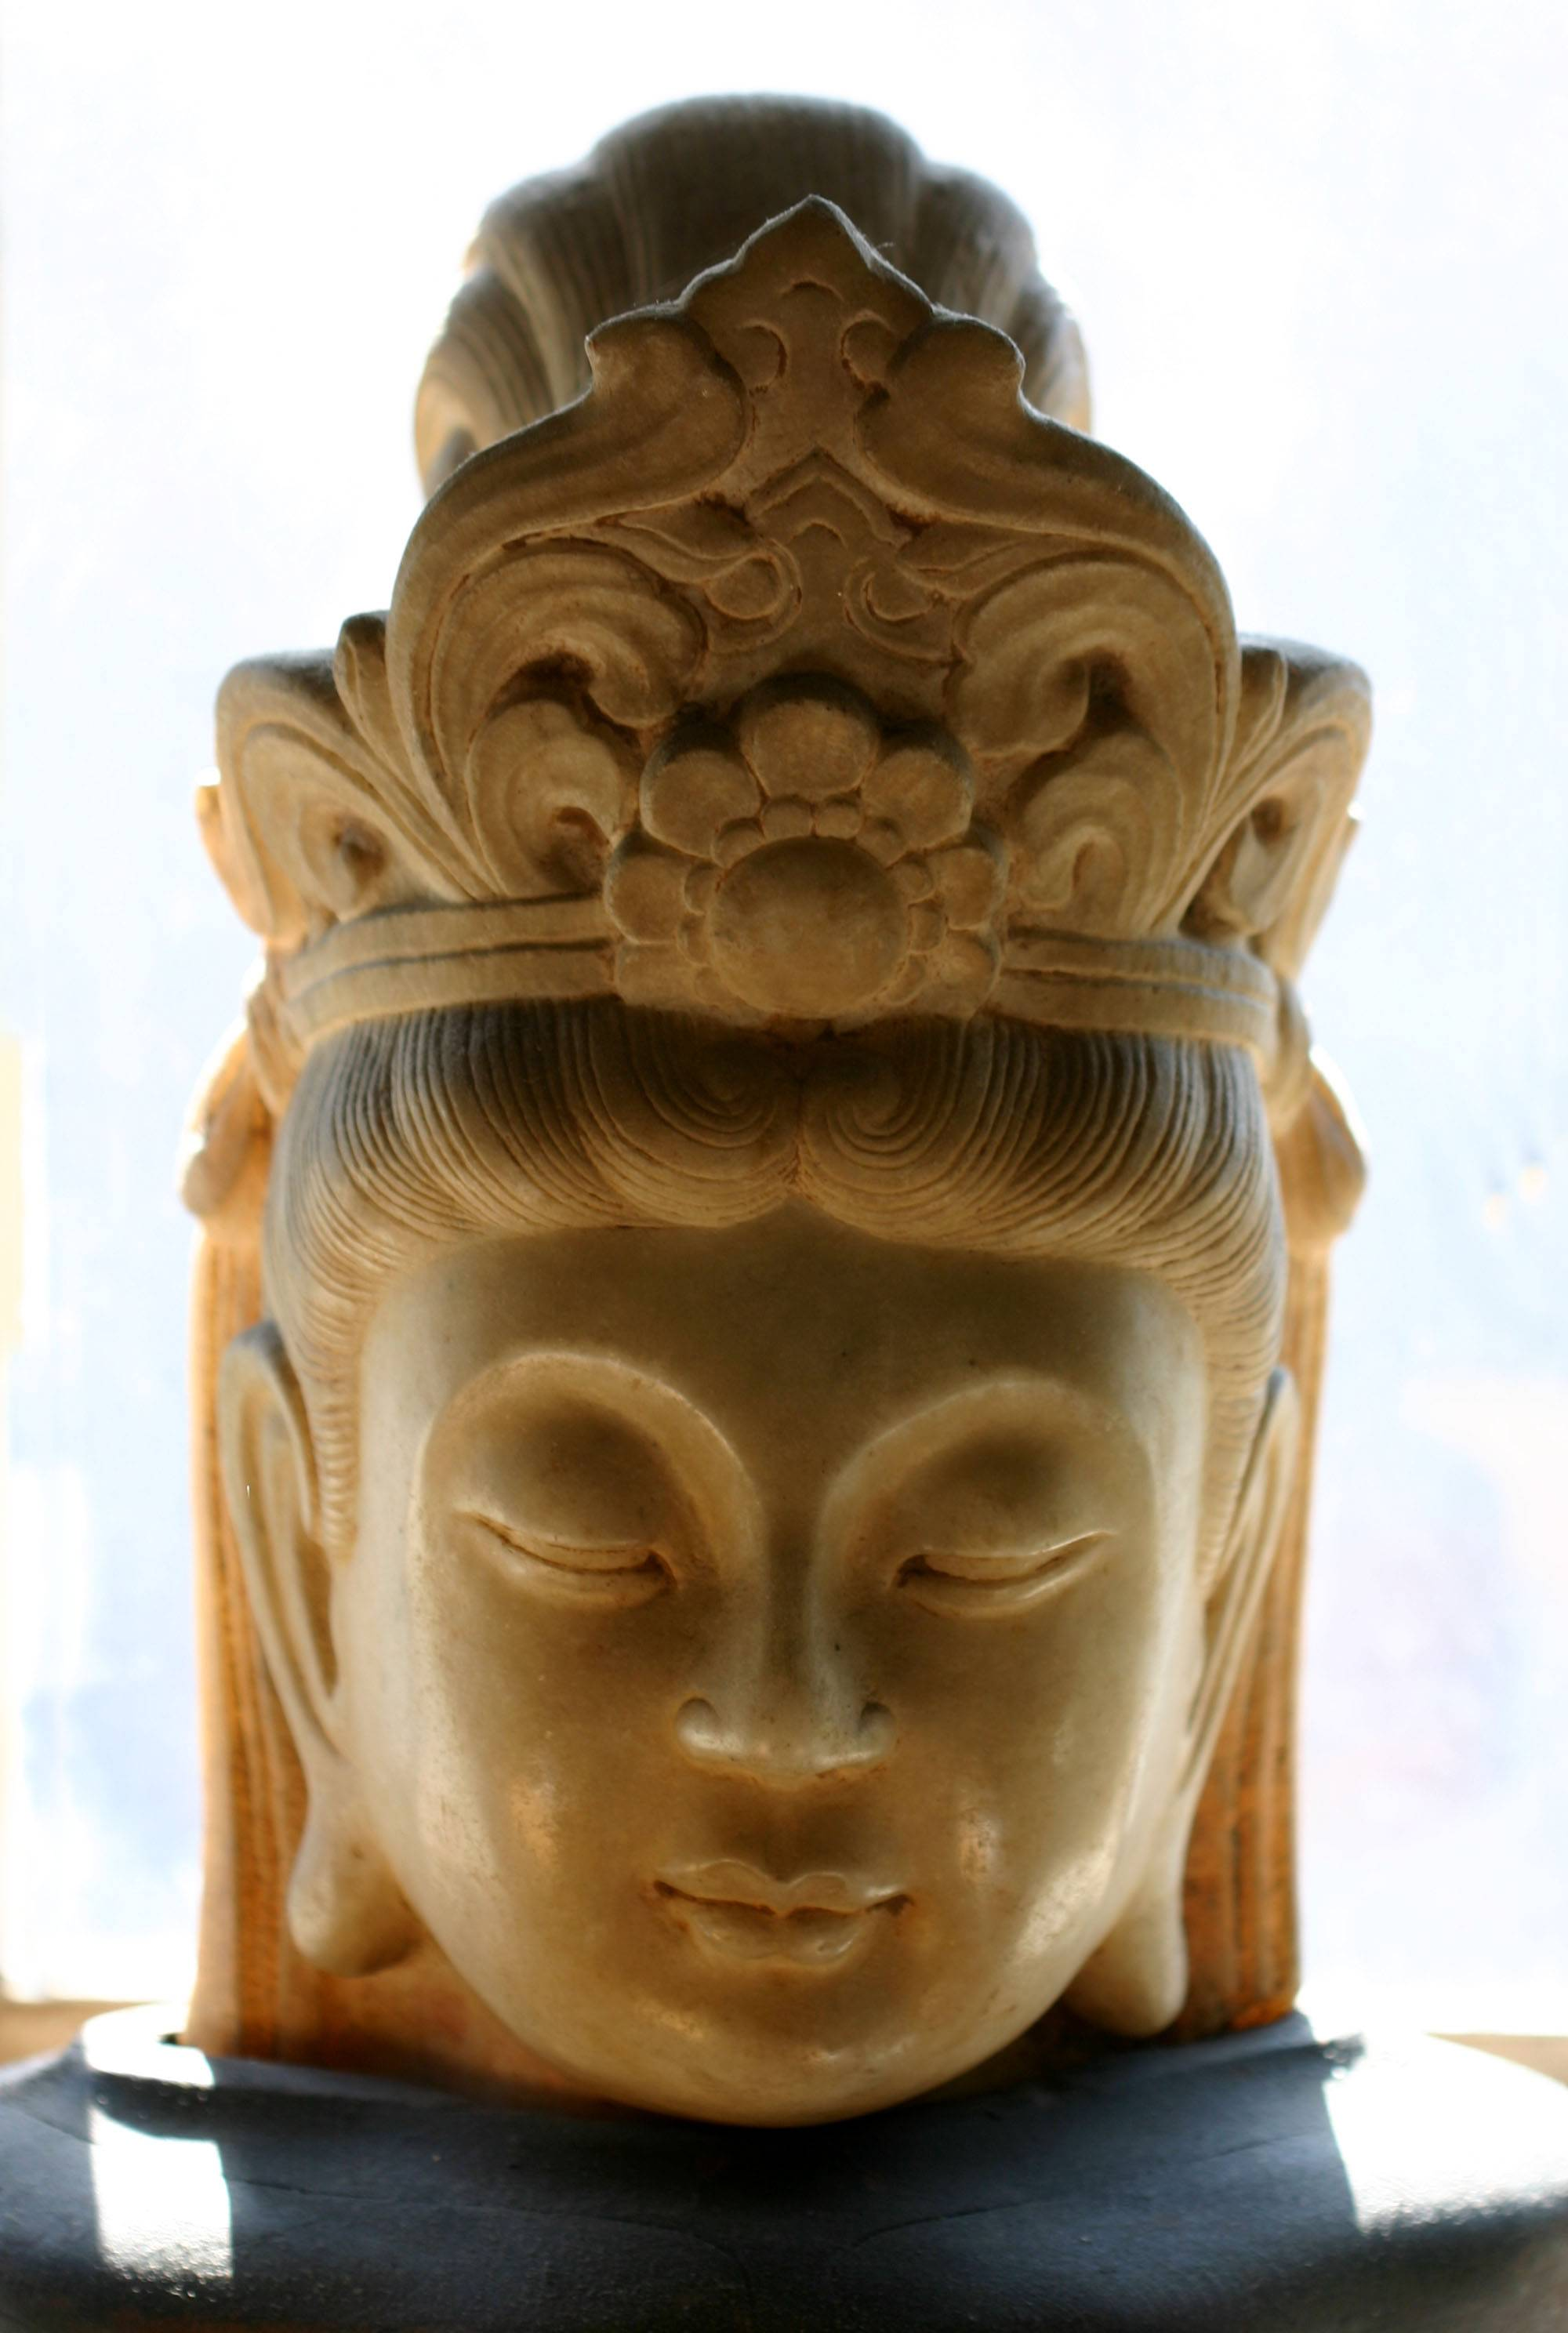 Kuan Yin, Goddess of Mercy & Compassion - Chinese Marble Head, 18 inches high